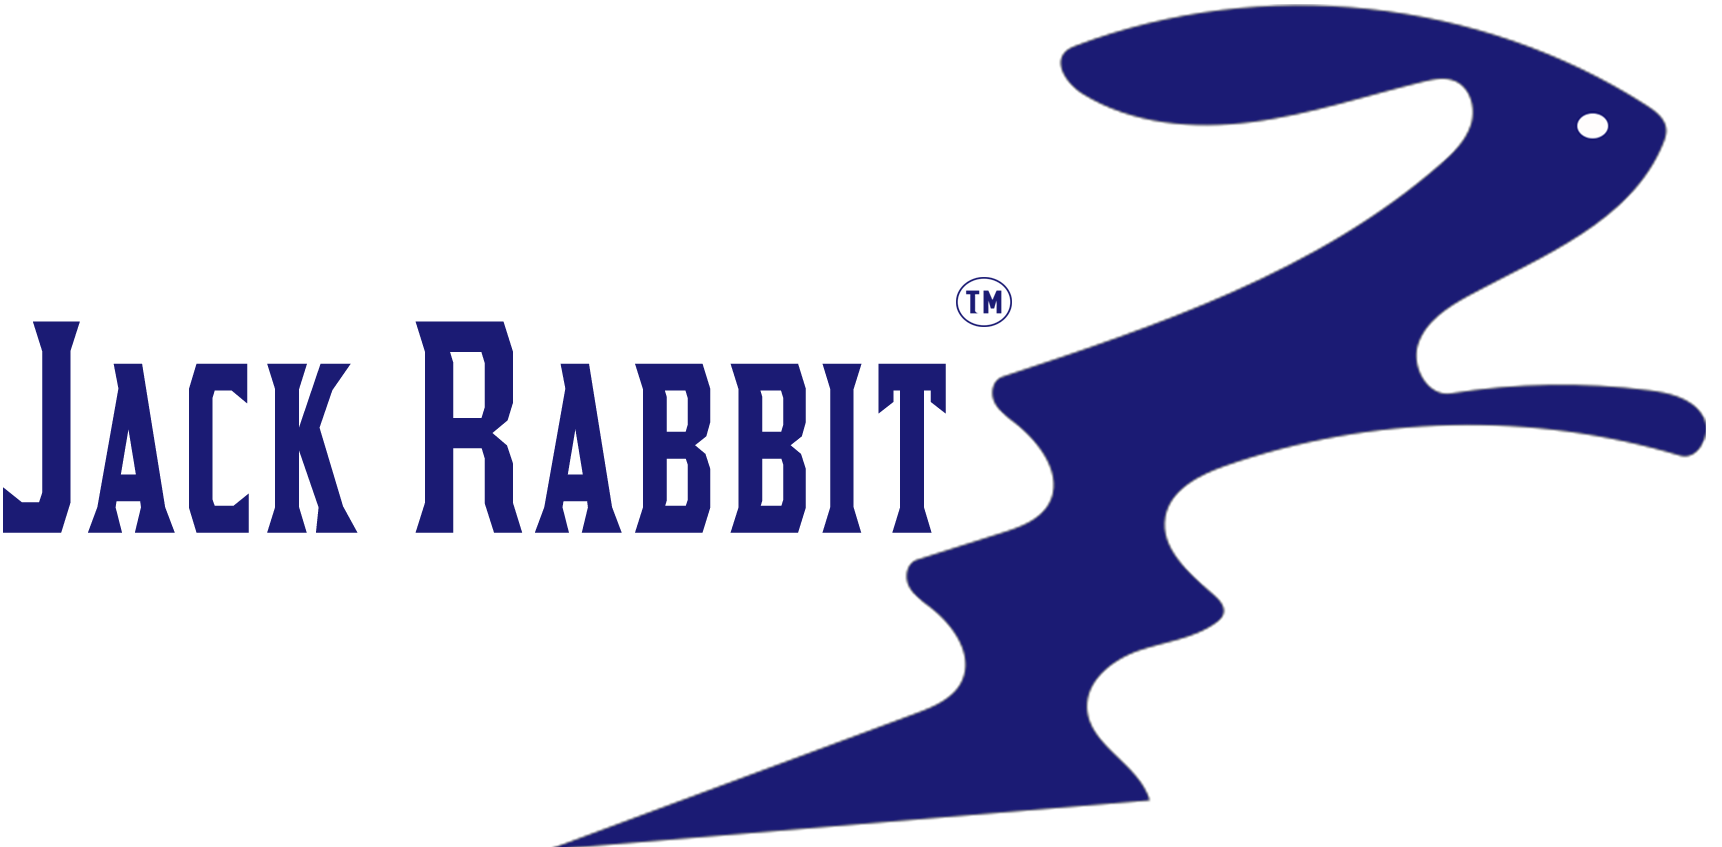 jackrabbit-nb-tm.png